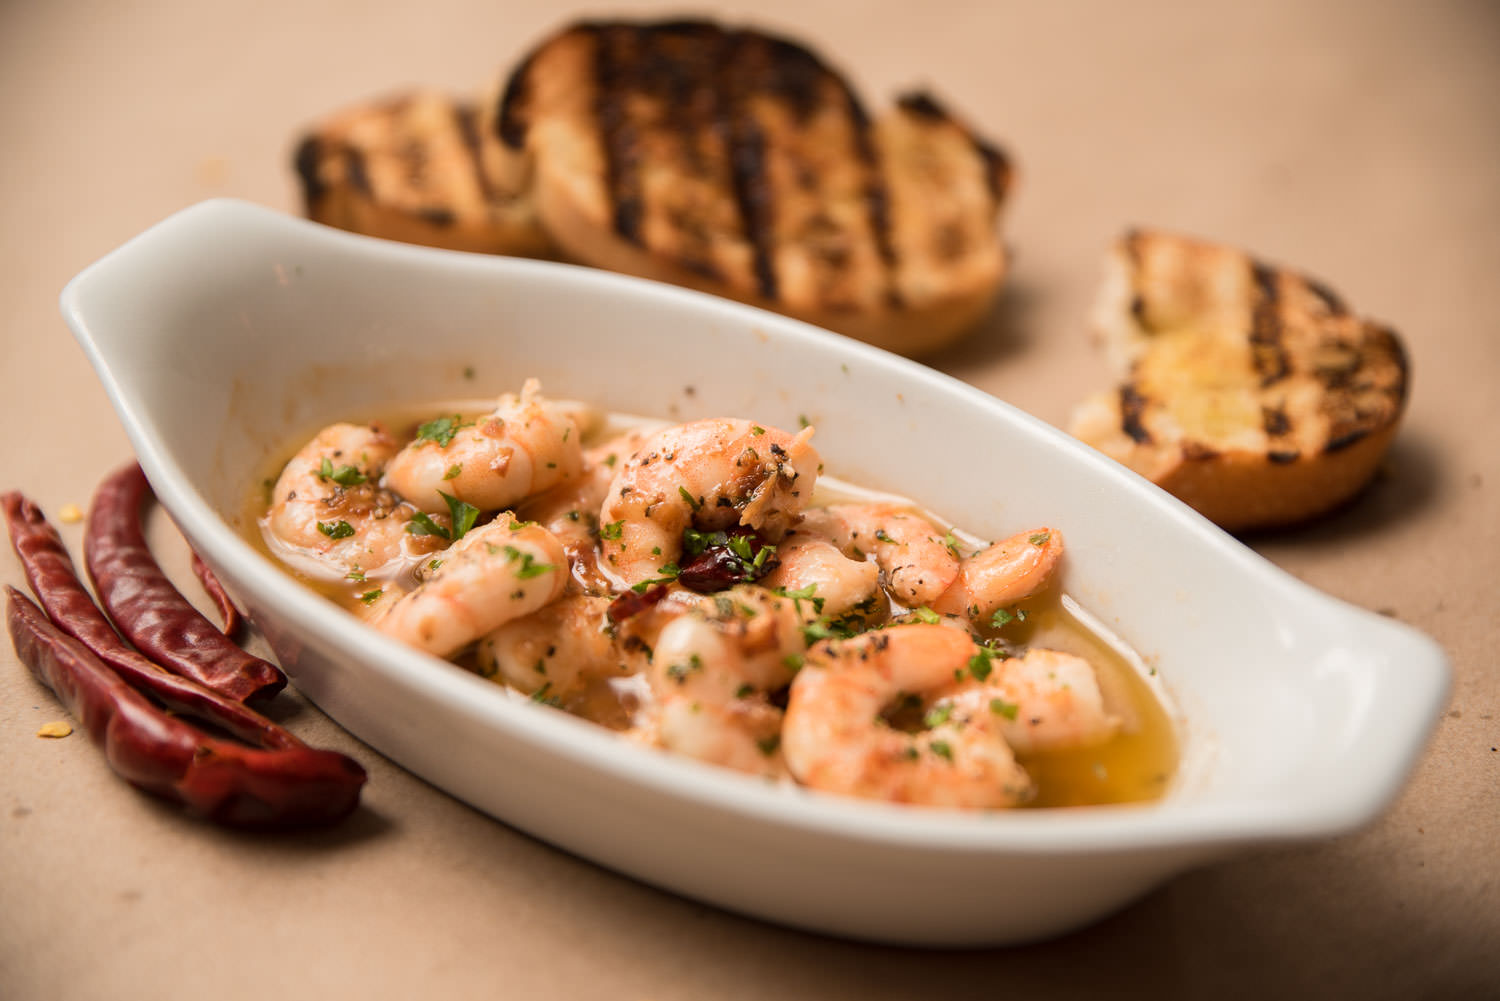 Gambas al ajillo - Shrimp in garlic